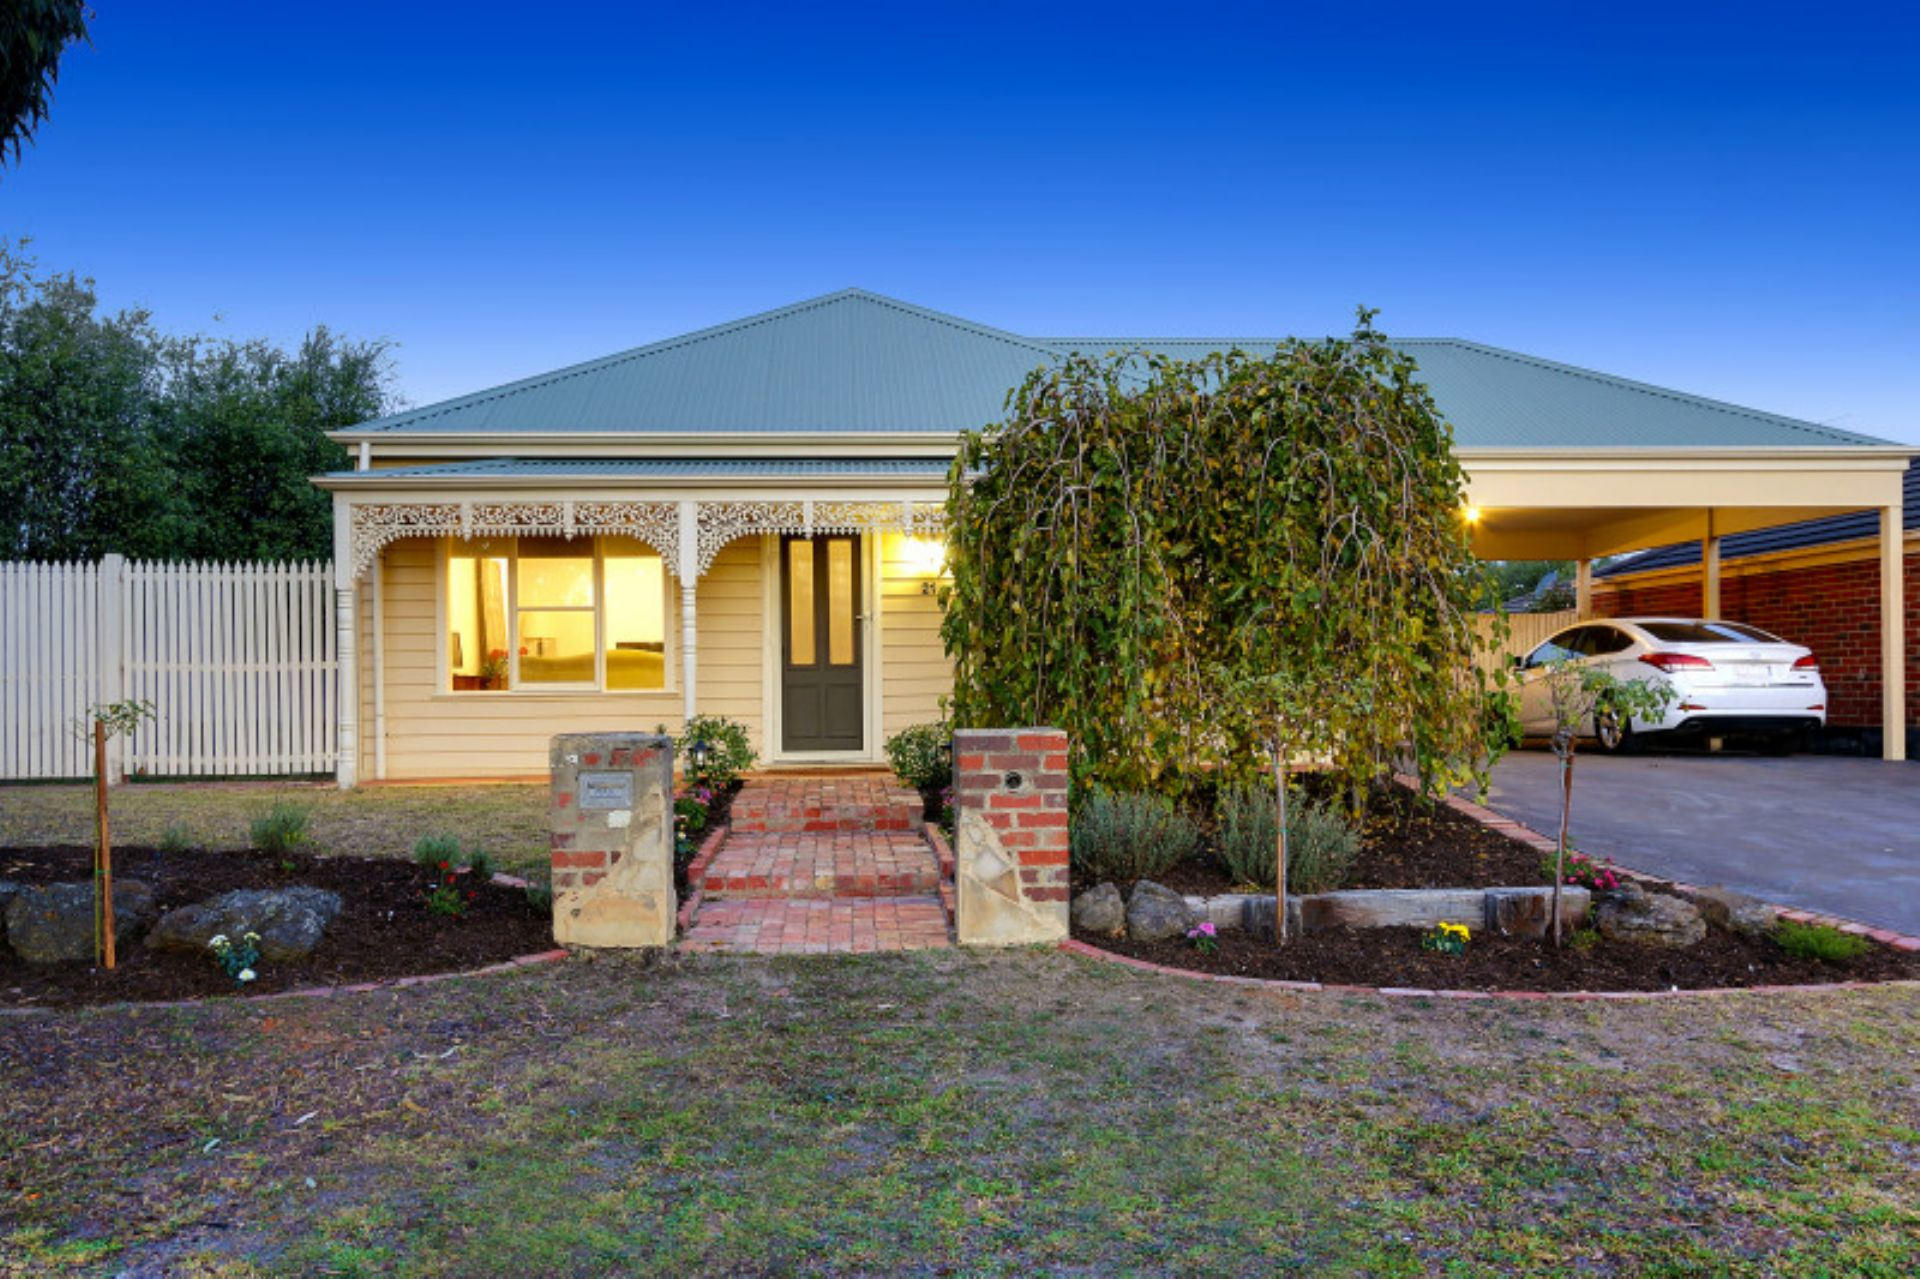 21 Galilee Court, MOUNT MARTHA, VIC, 3934 - Image